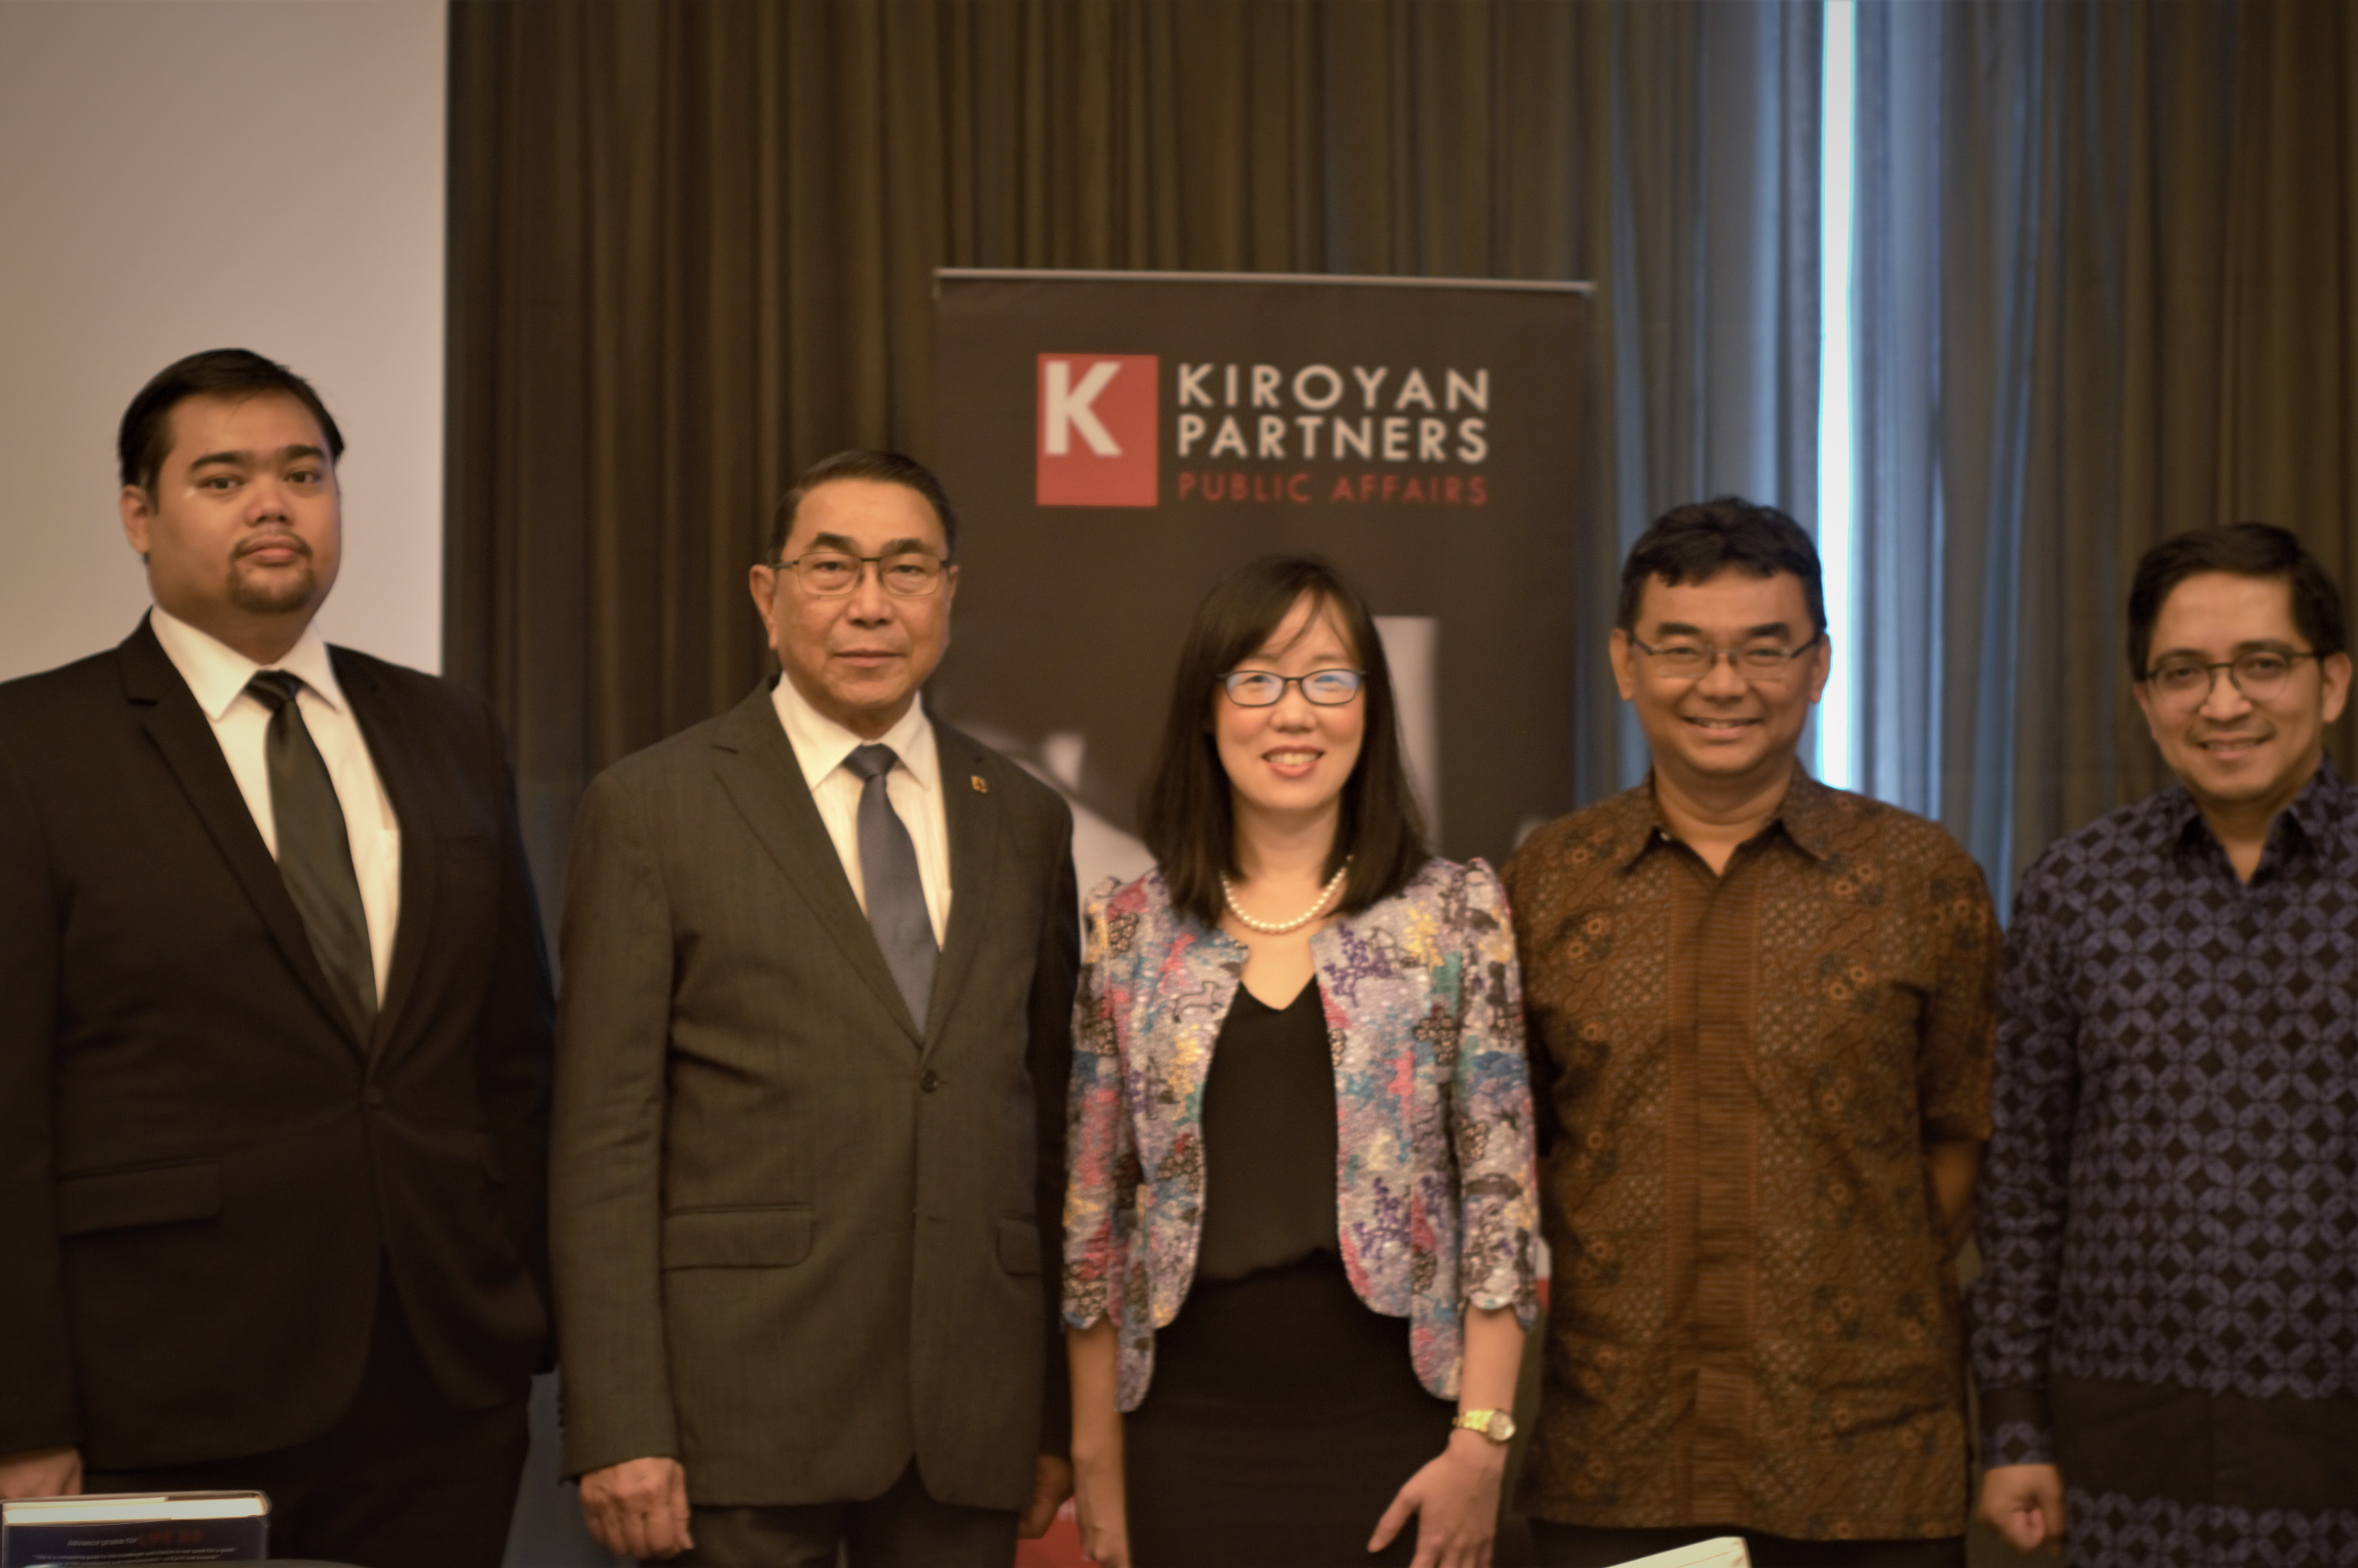 Kiroyan Partners - Insights